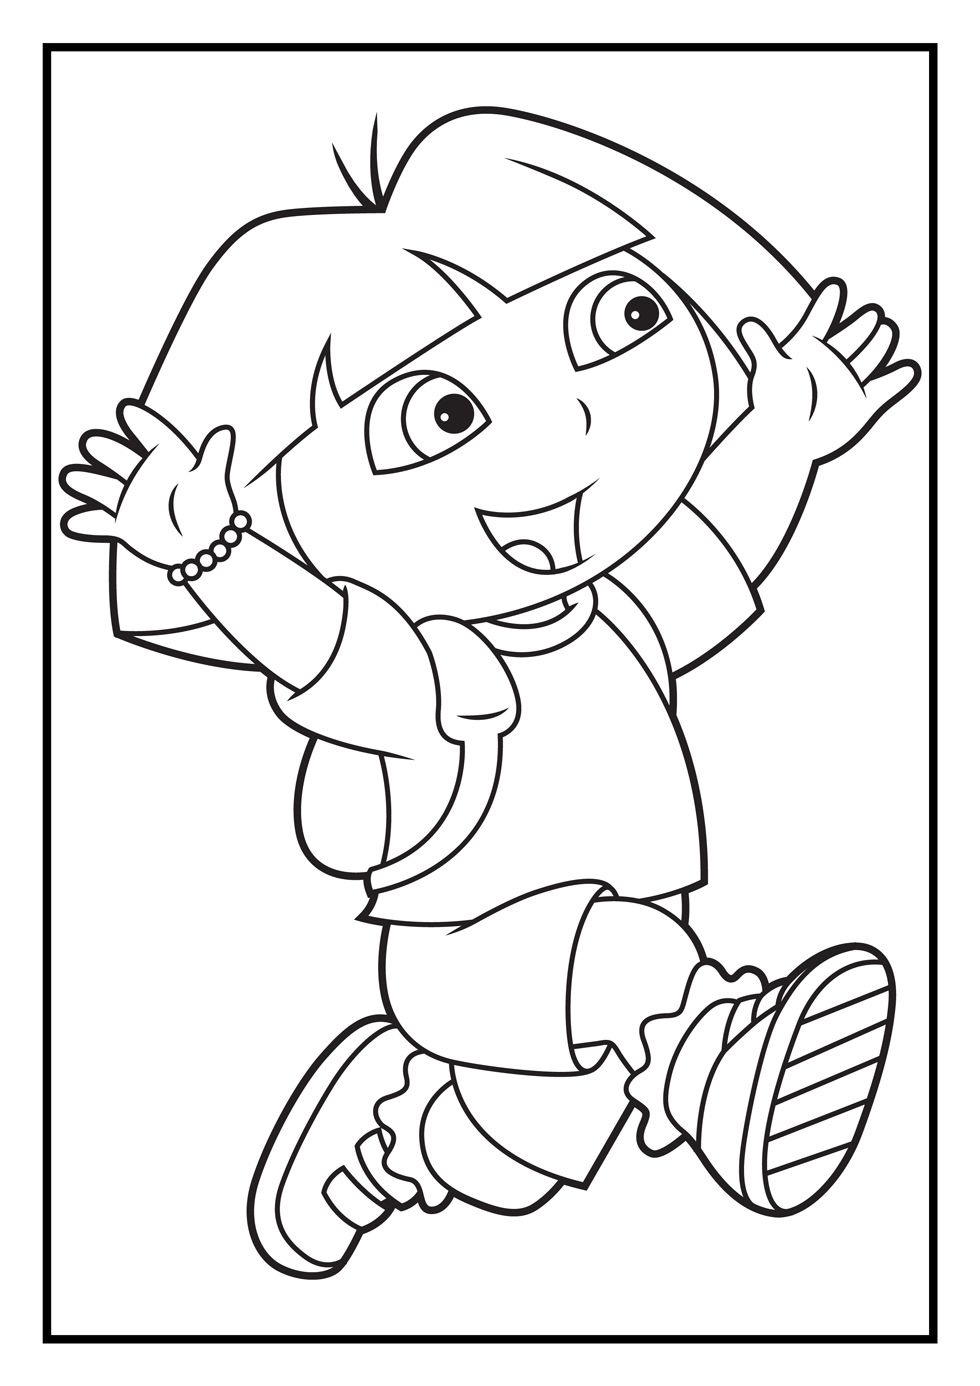 Stunning dora coloring pages to print out according for Dora the explorer coloring pages online free